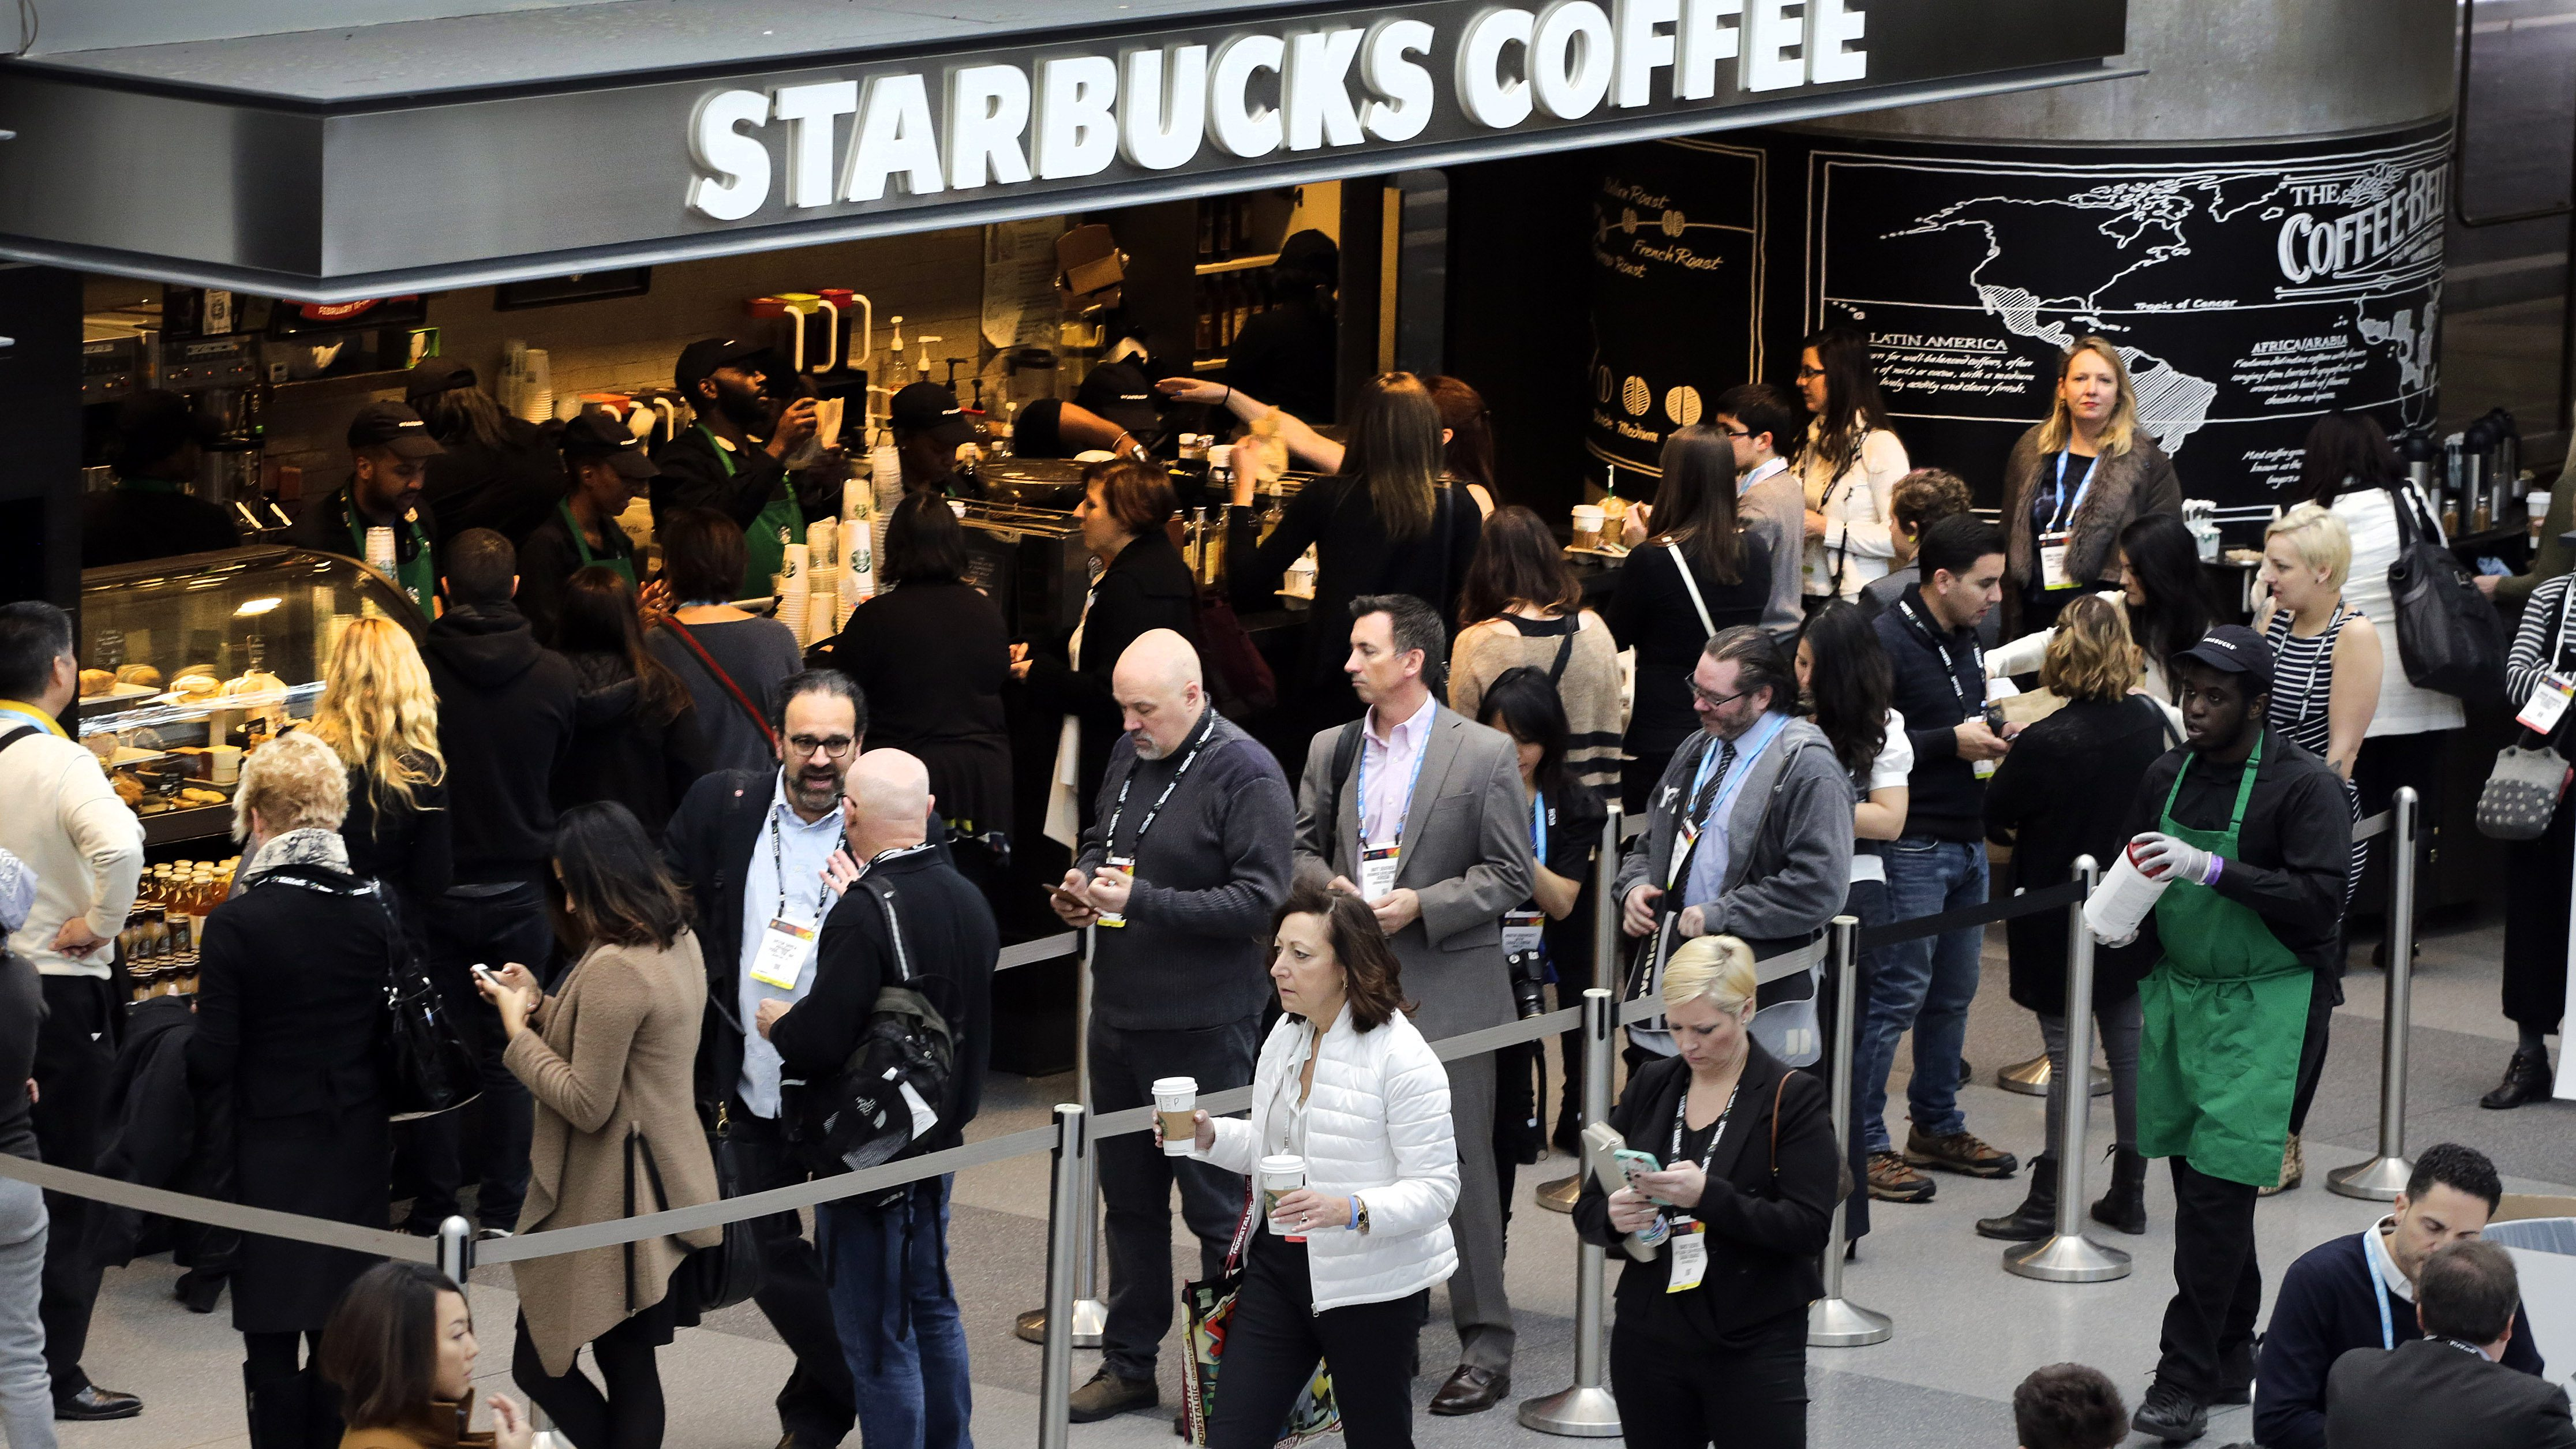 Customers line up at a Starbucks Coffee, Monday, Feb. 15, 2016, in New York.